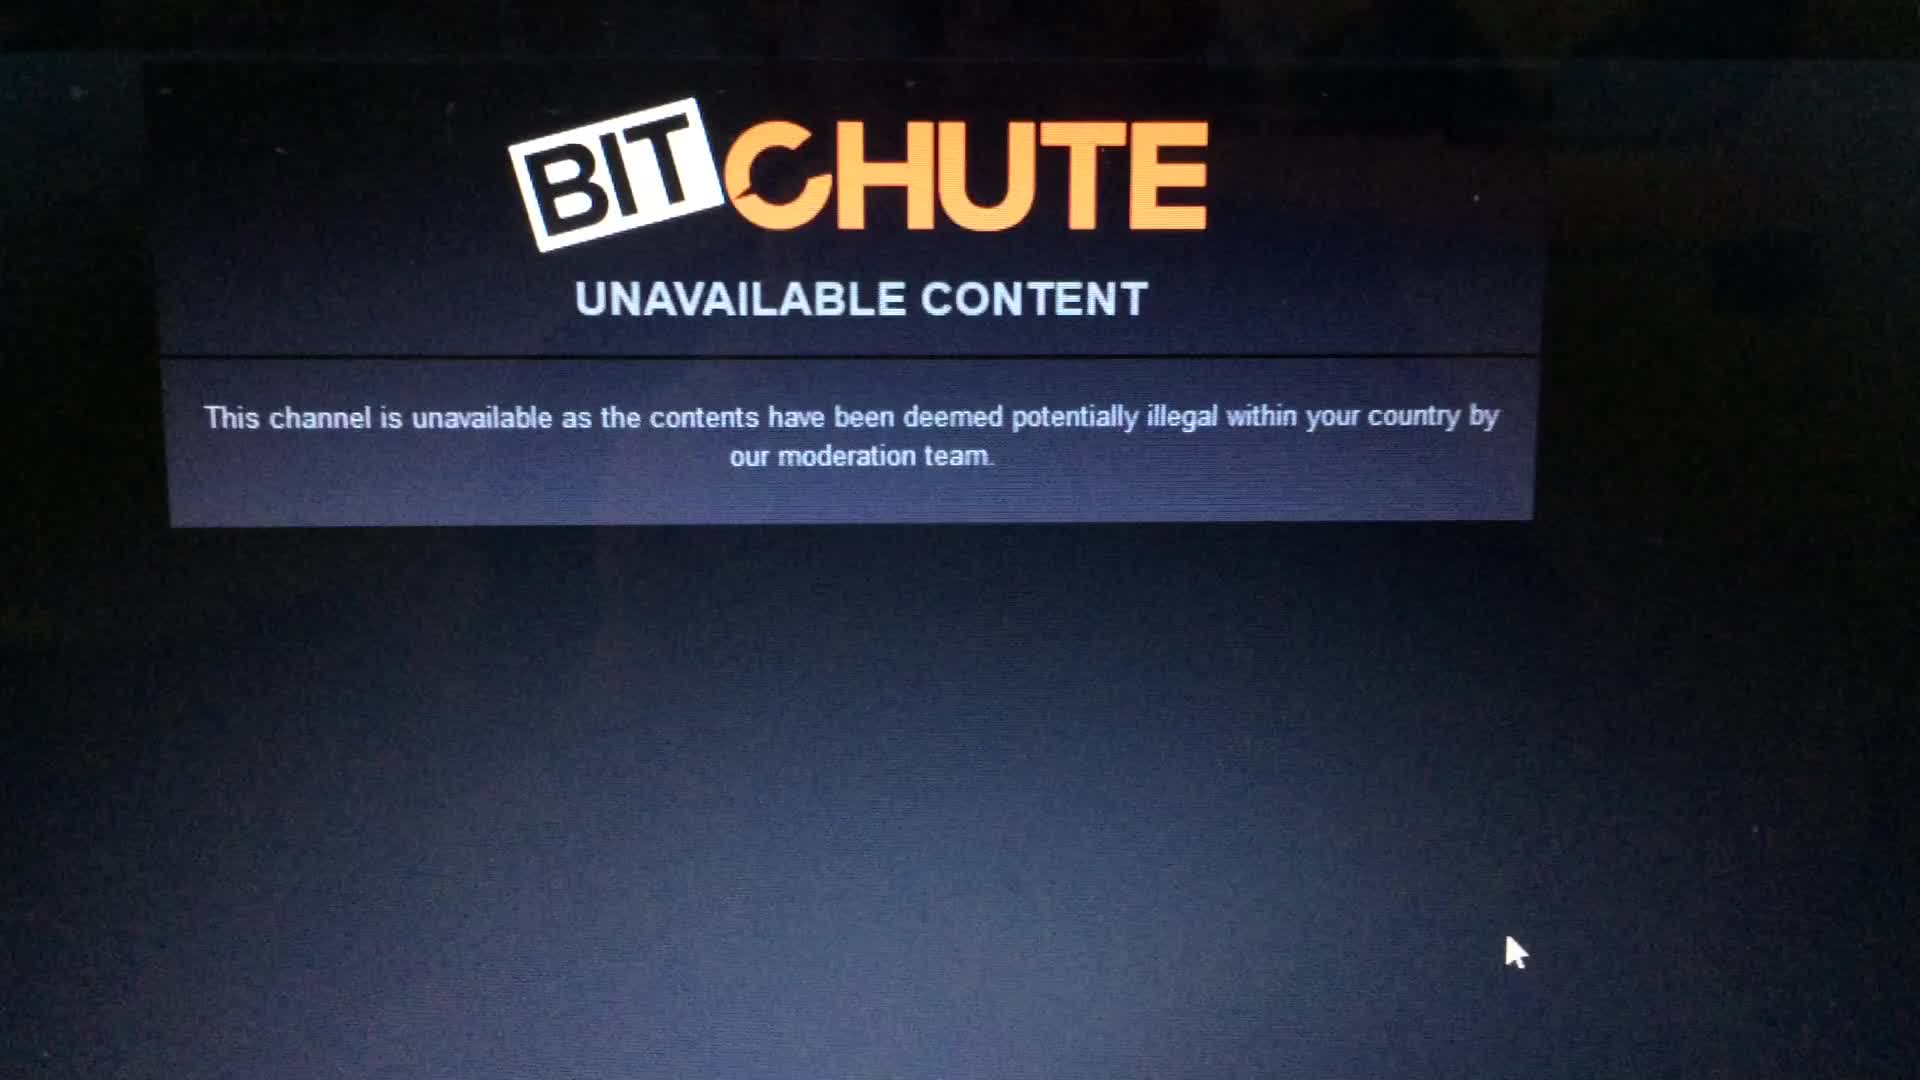 Bitchute censorship 2nd channel/1sub/3videos. BANNED!